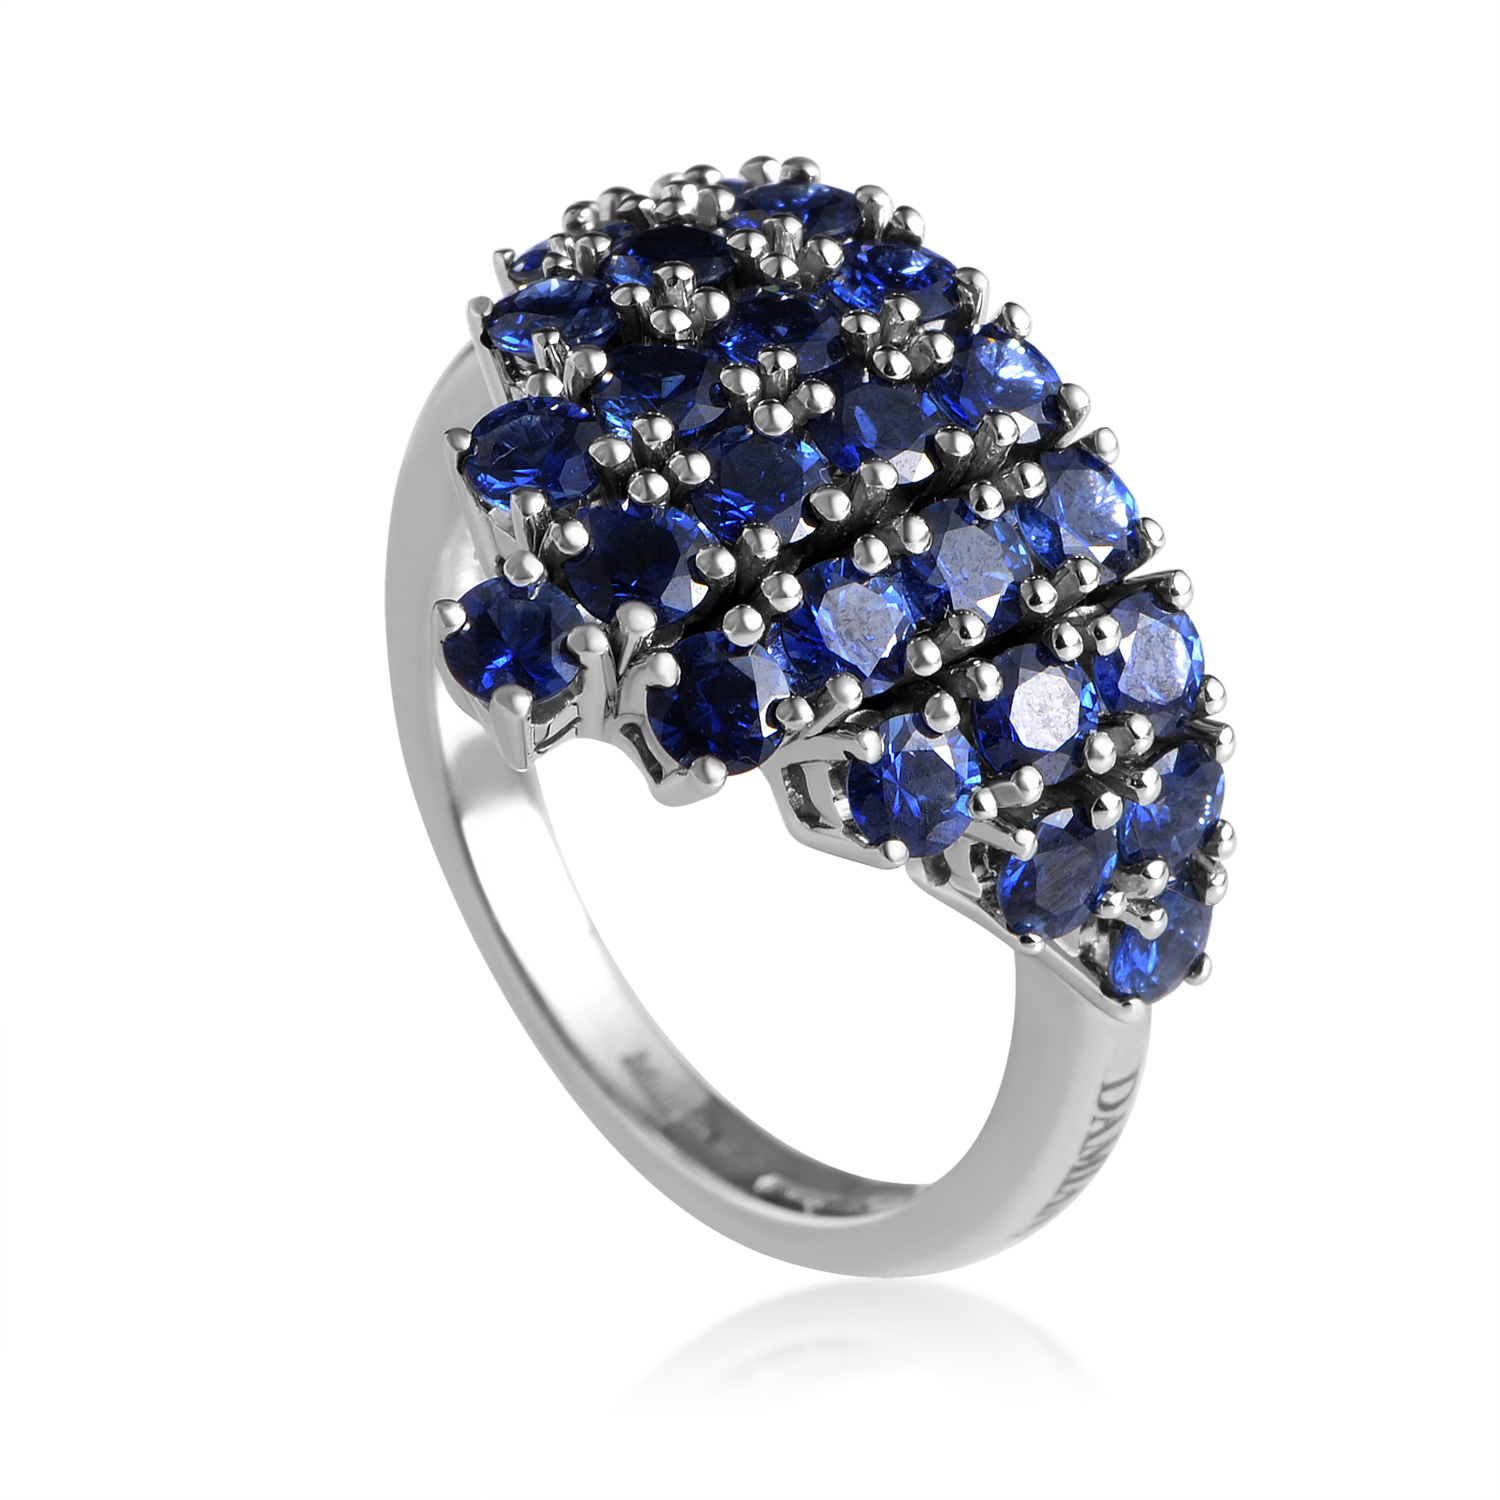 18K White Gold Sapphire Blue Pave Ring 20017430